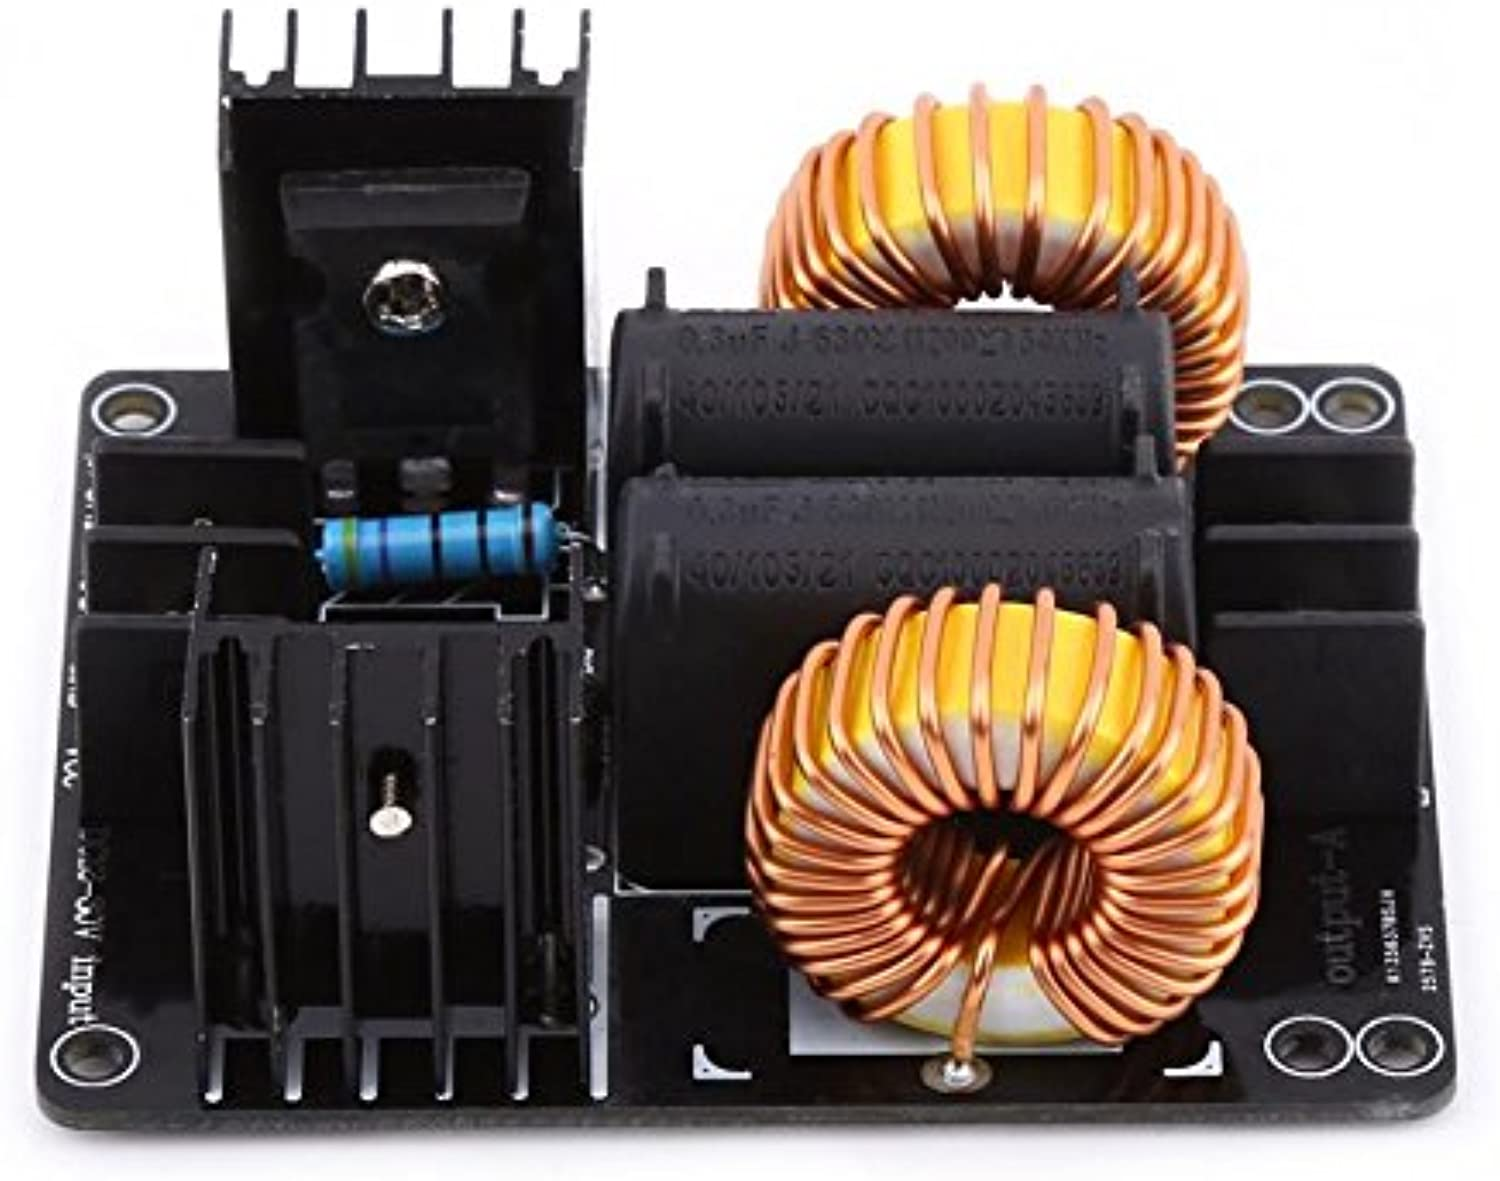 Supply 20a  Dc12 30v 20a 1000w Supply Driver Board Induction Heating Module Heater Copper Wire  Power Inssizetion Hot Inductive Reasoning Evocation Generalization  1PCs